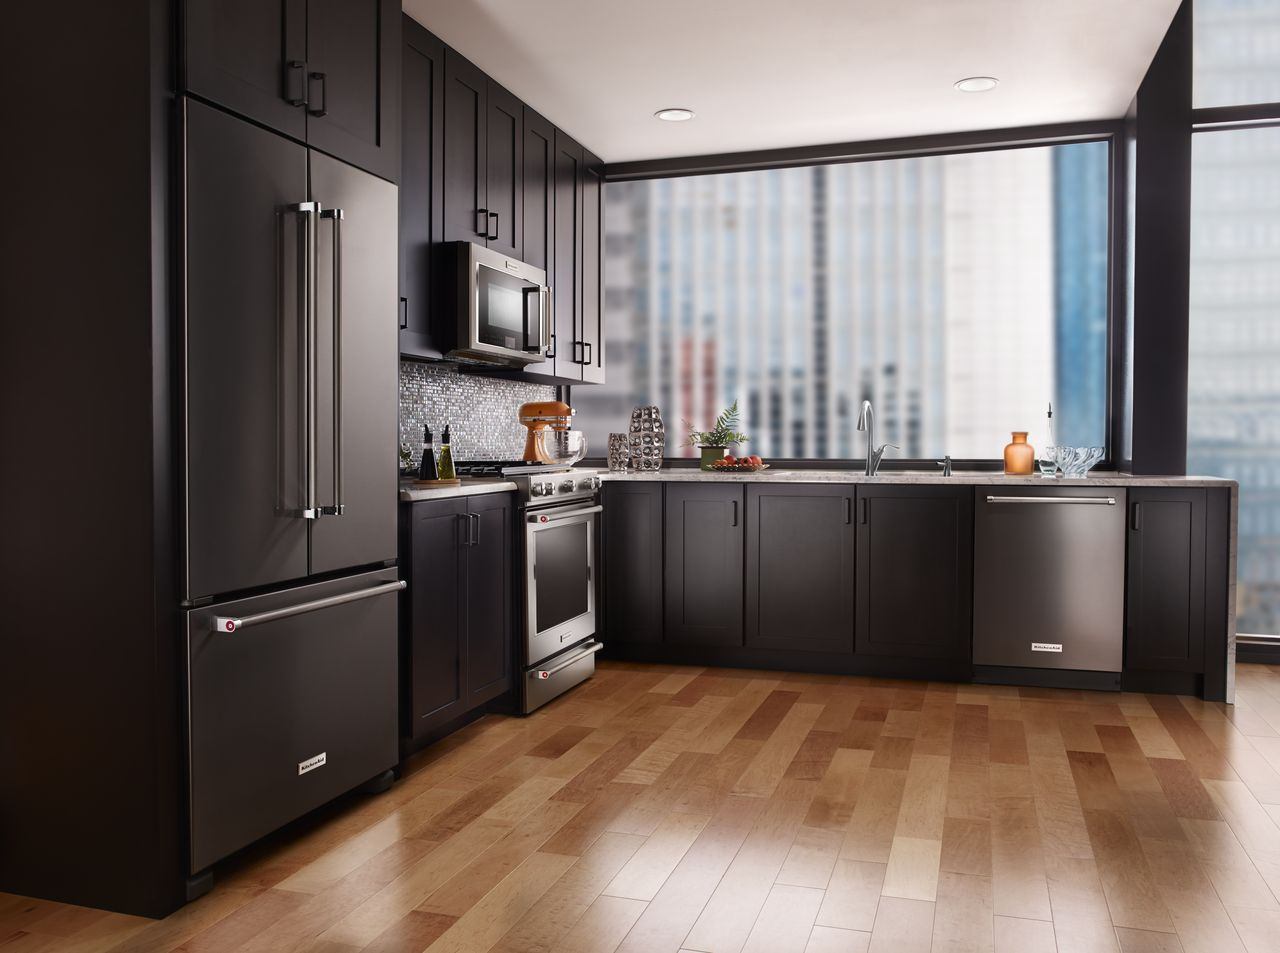 Selecting Stainless appliances